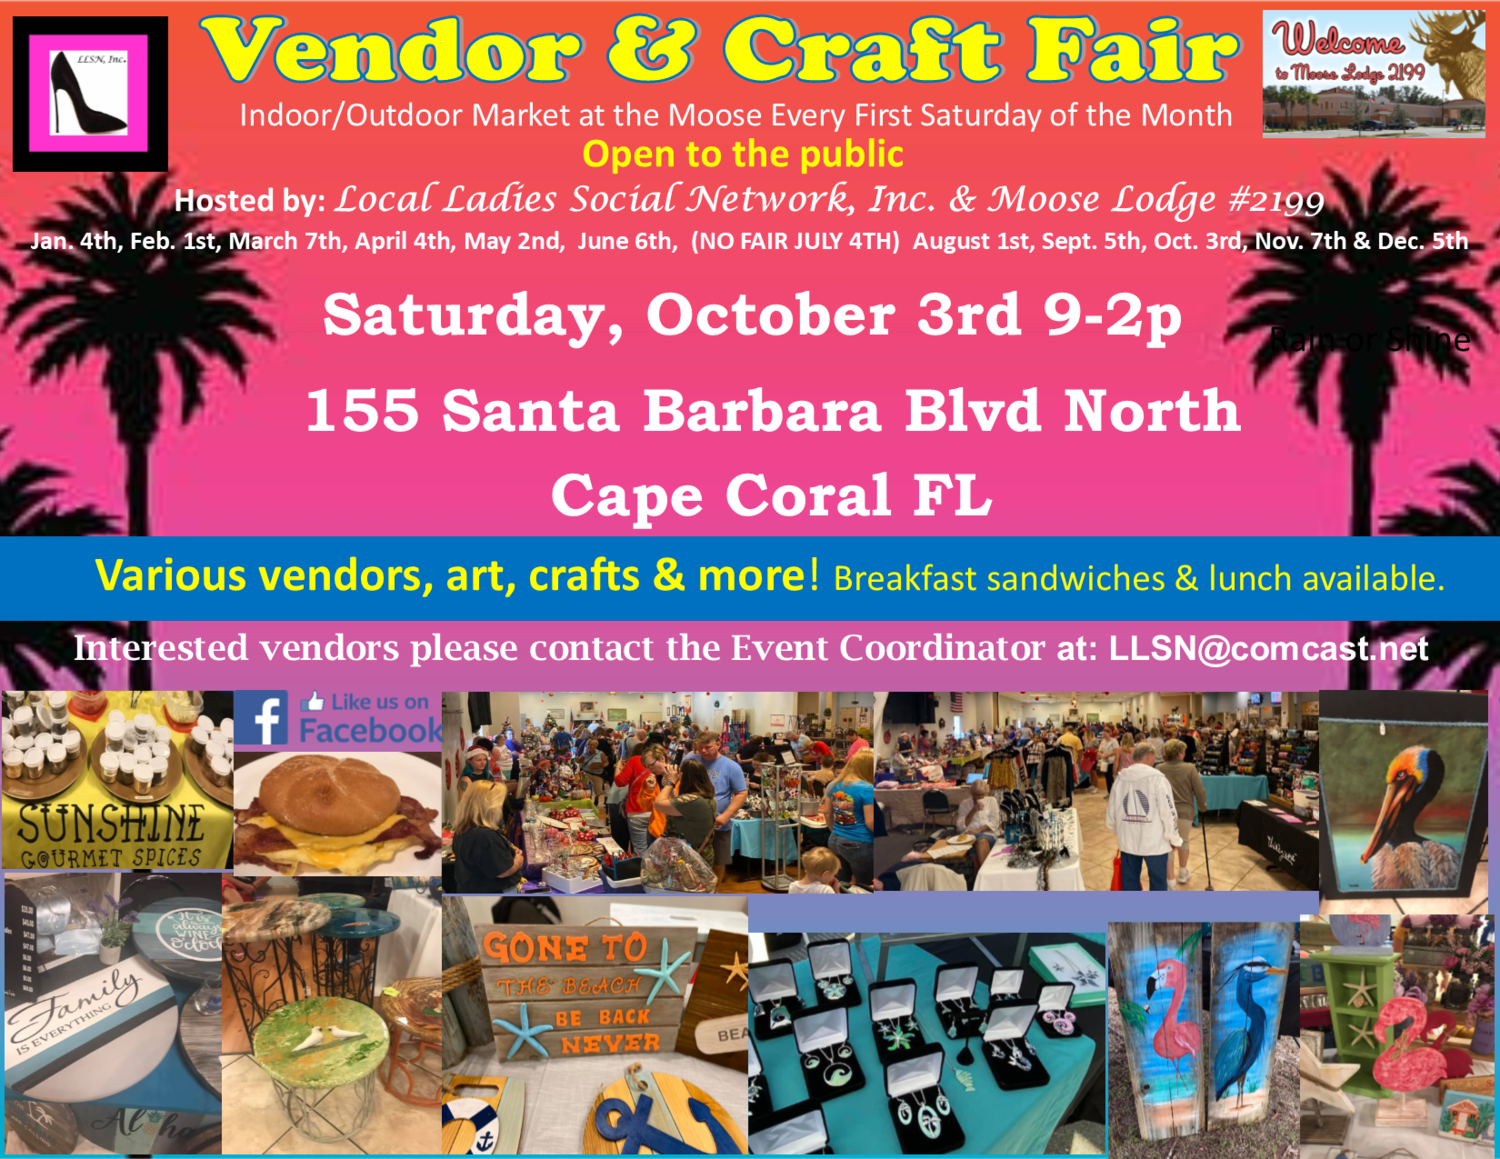 Vendor & Craft Fair October 3rd 2020 OUTSIDE SPOT- (10x10 area)